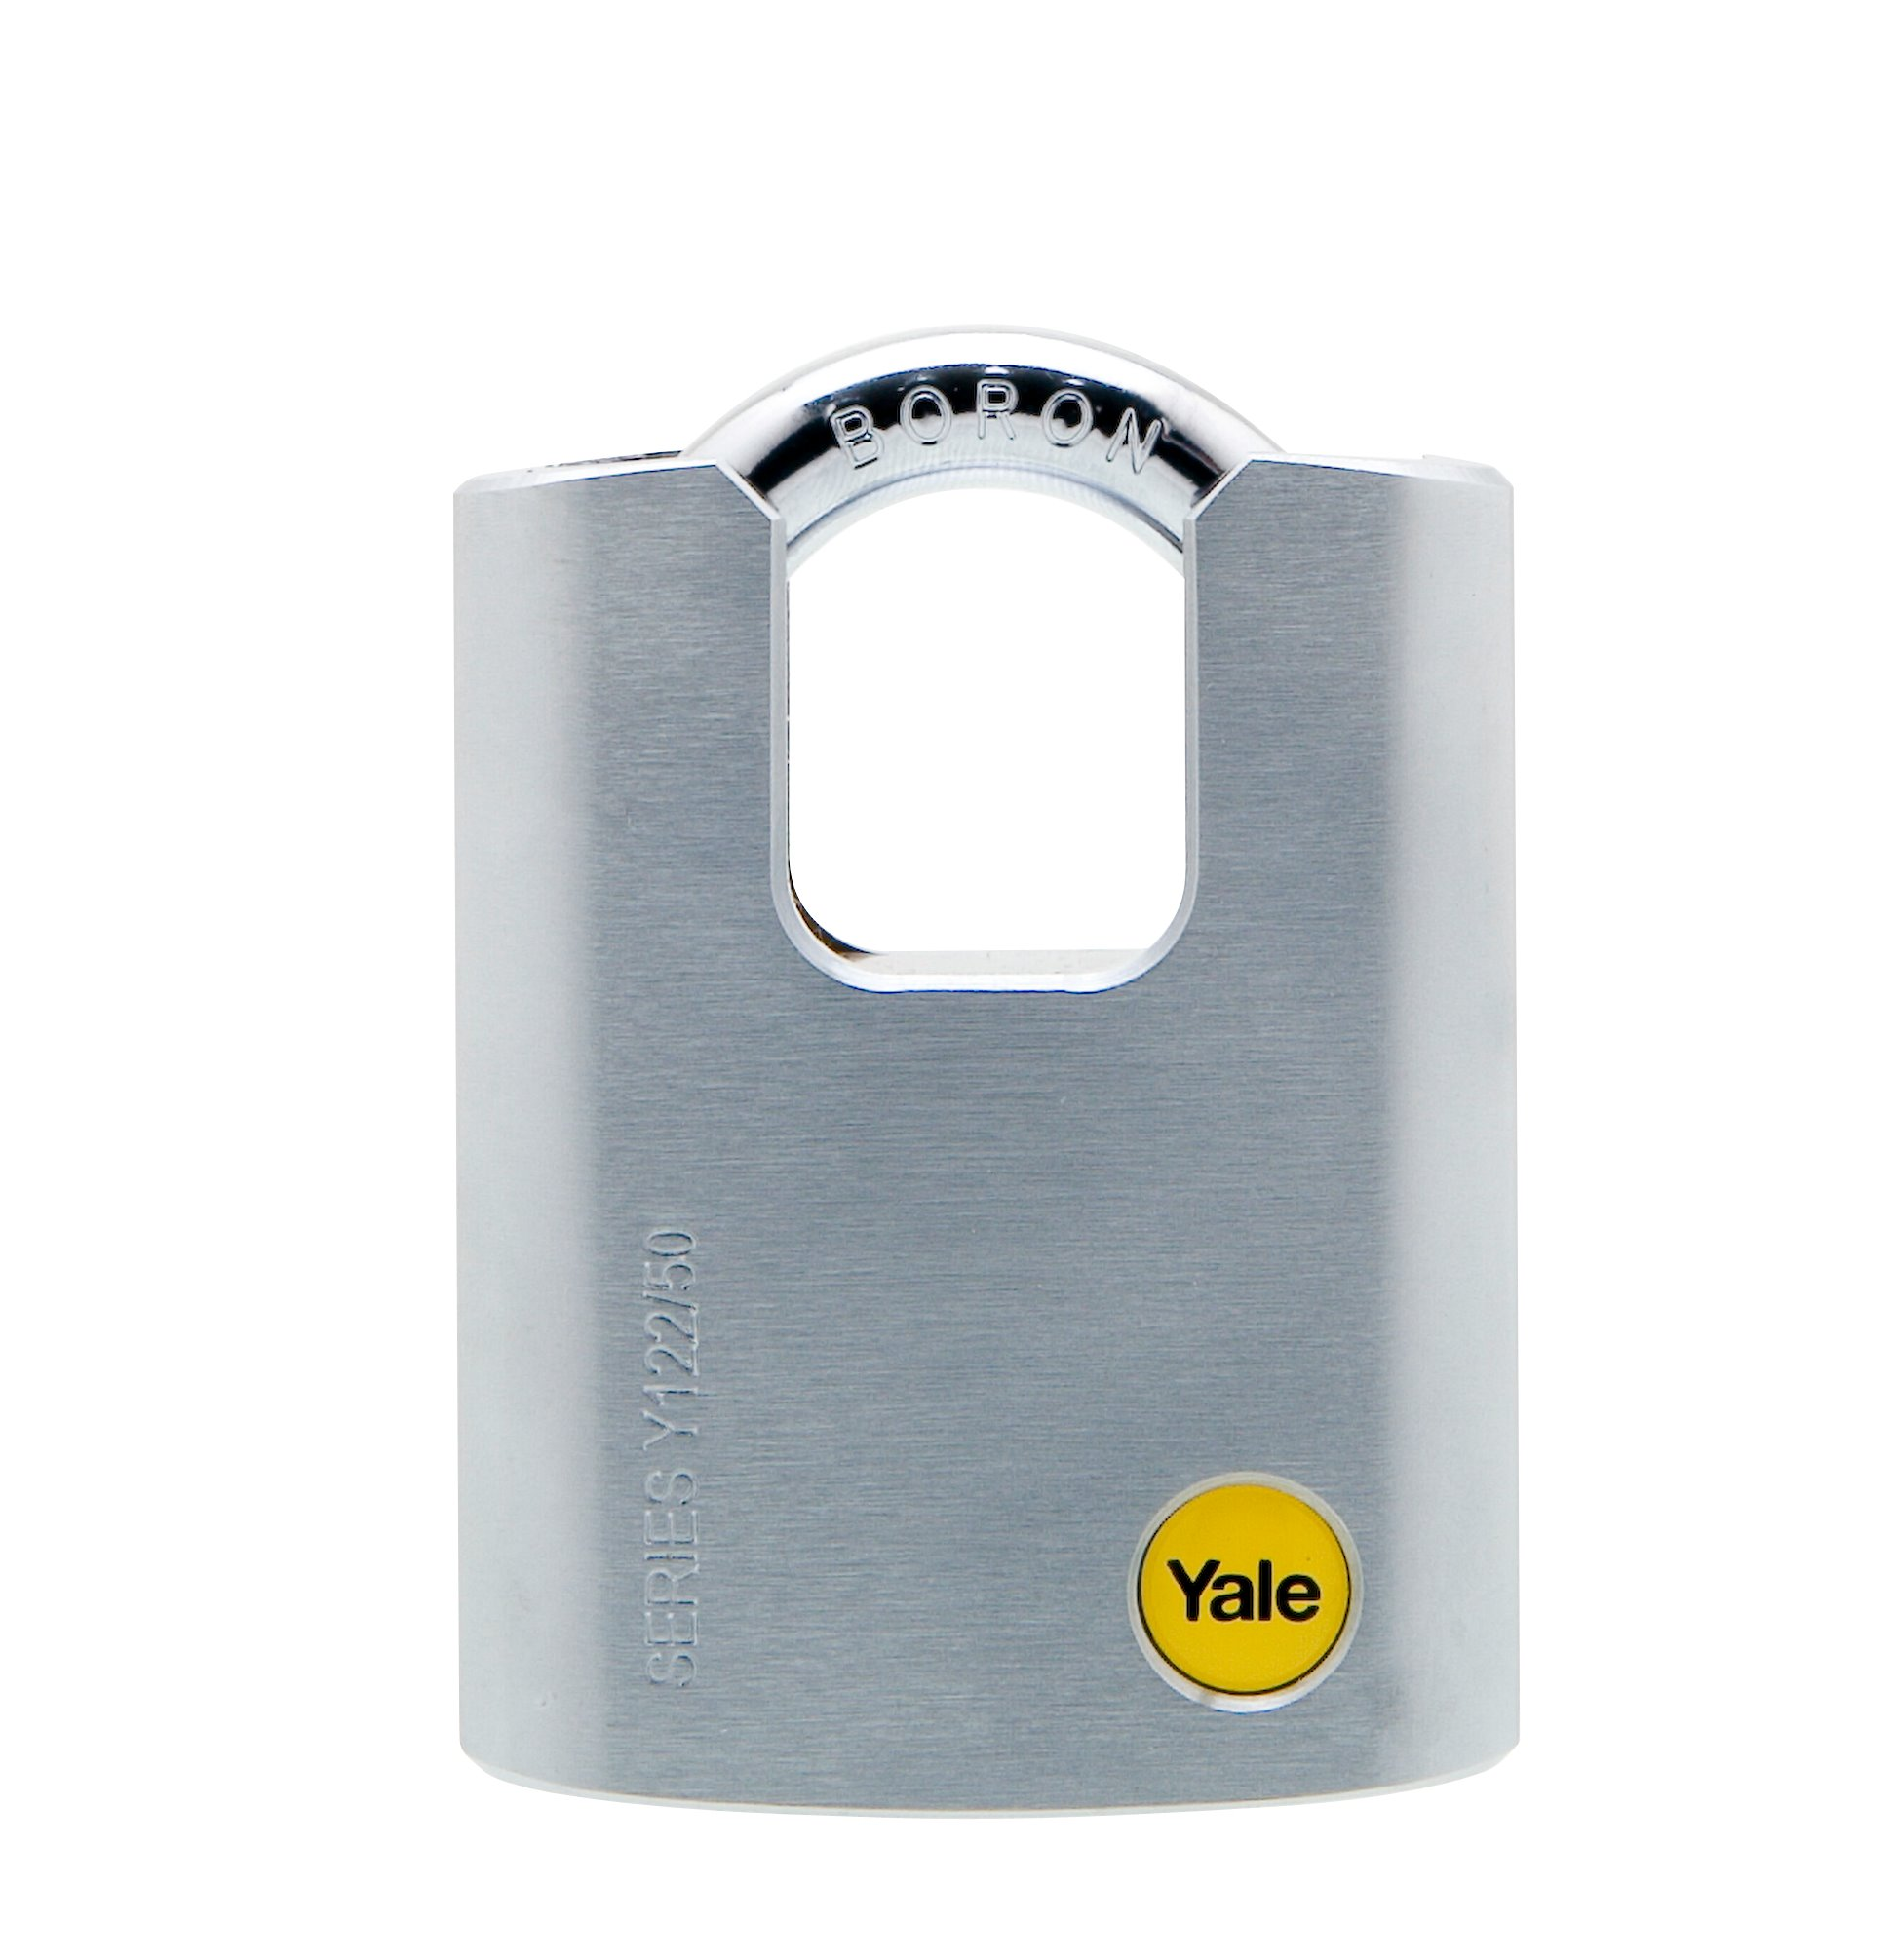 Y210C Closed Shackle High Security Steel Padlock